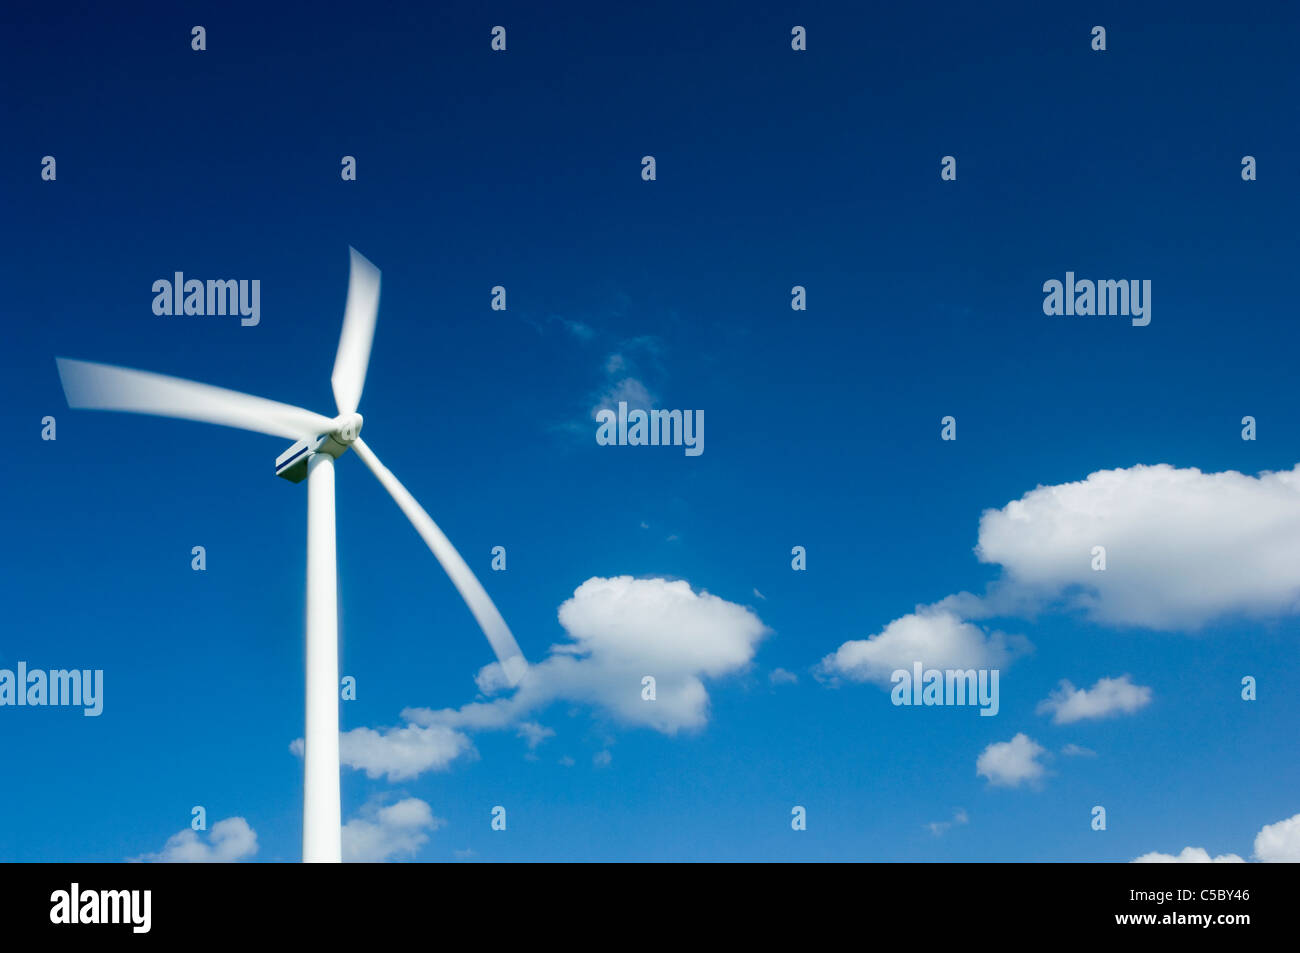 Low angle view of a wind turbine against the sky - Stock Image